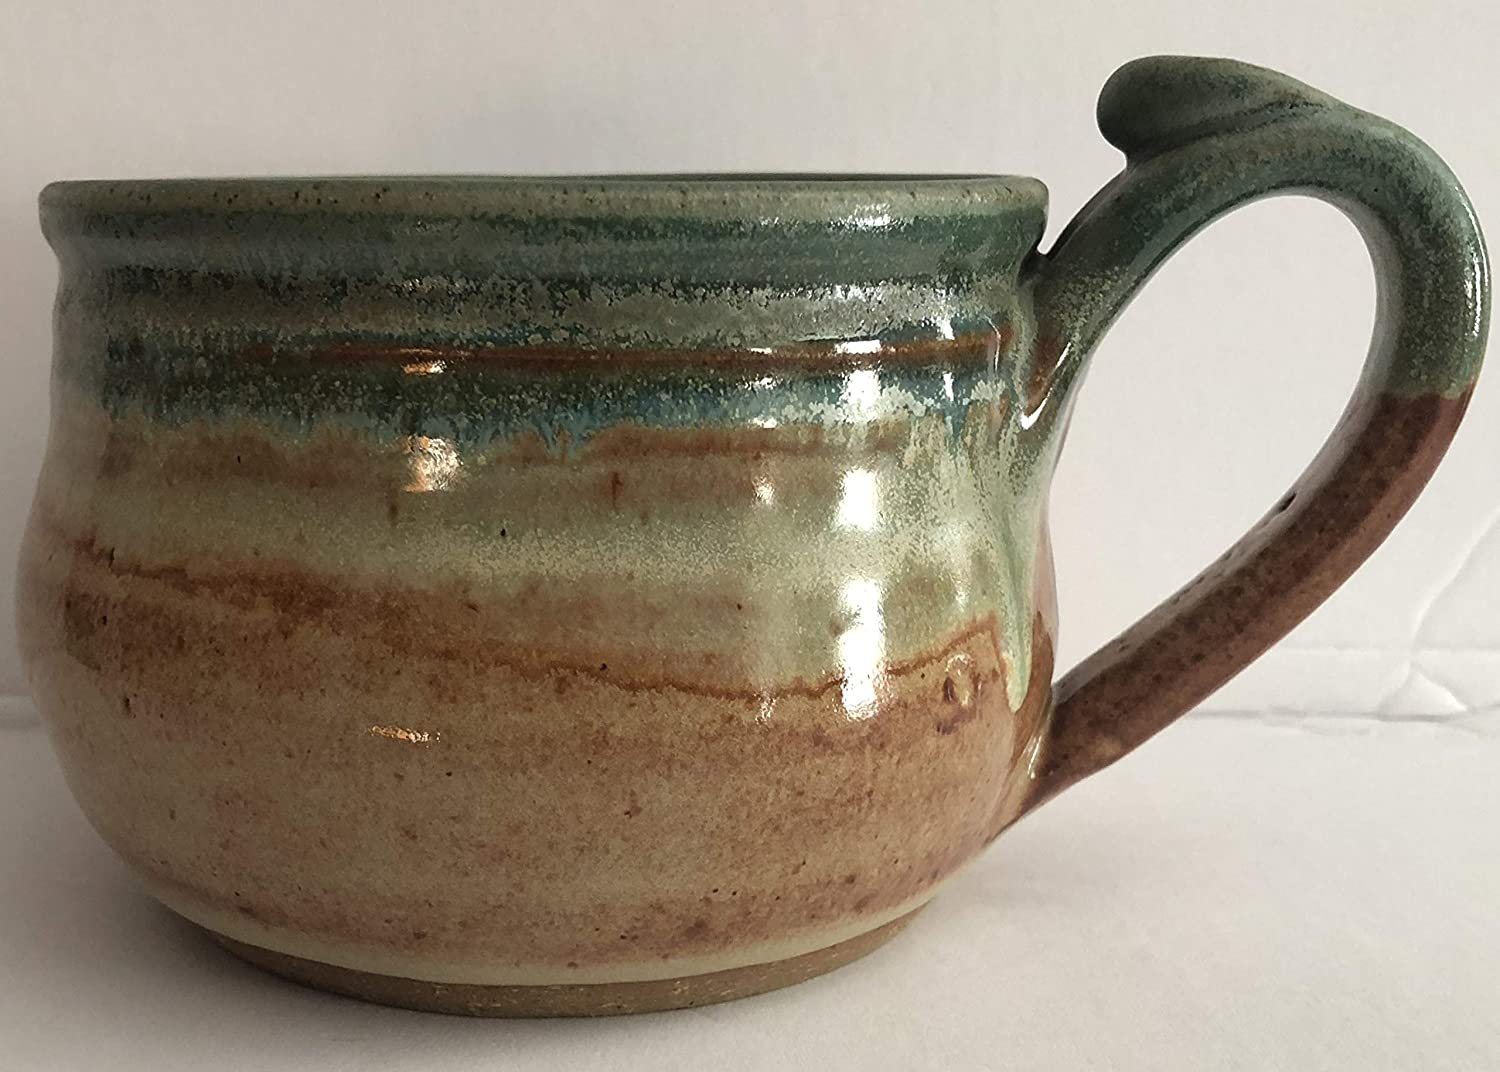 14 oz Blue and Beige Hand Made Ceramic Stoneware Pottery Soup Crock Bowl with Handle Hand Painted and Glazed 1 Bowl